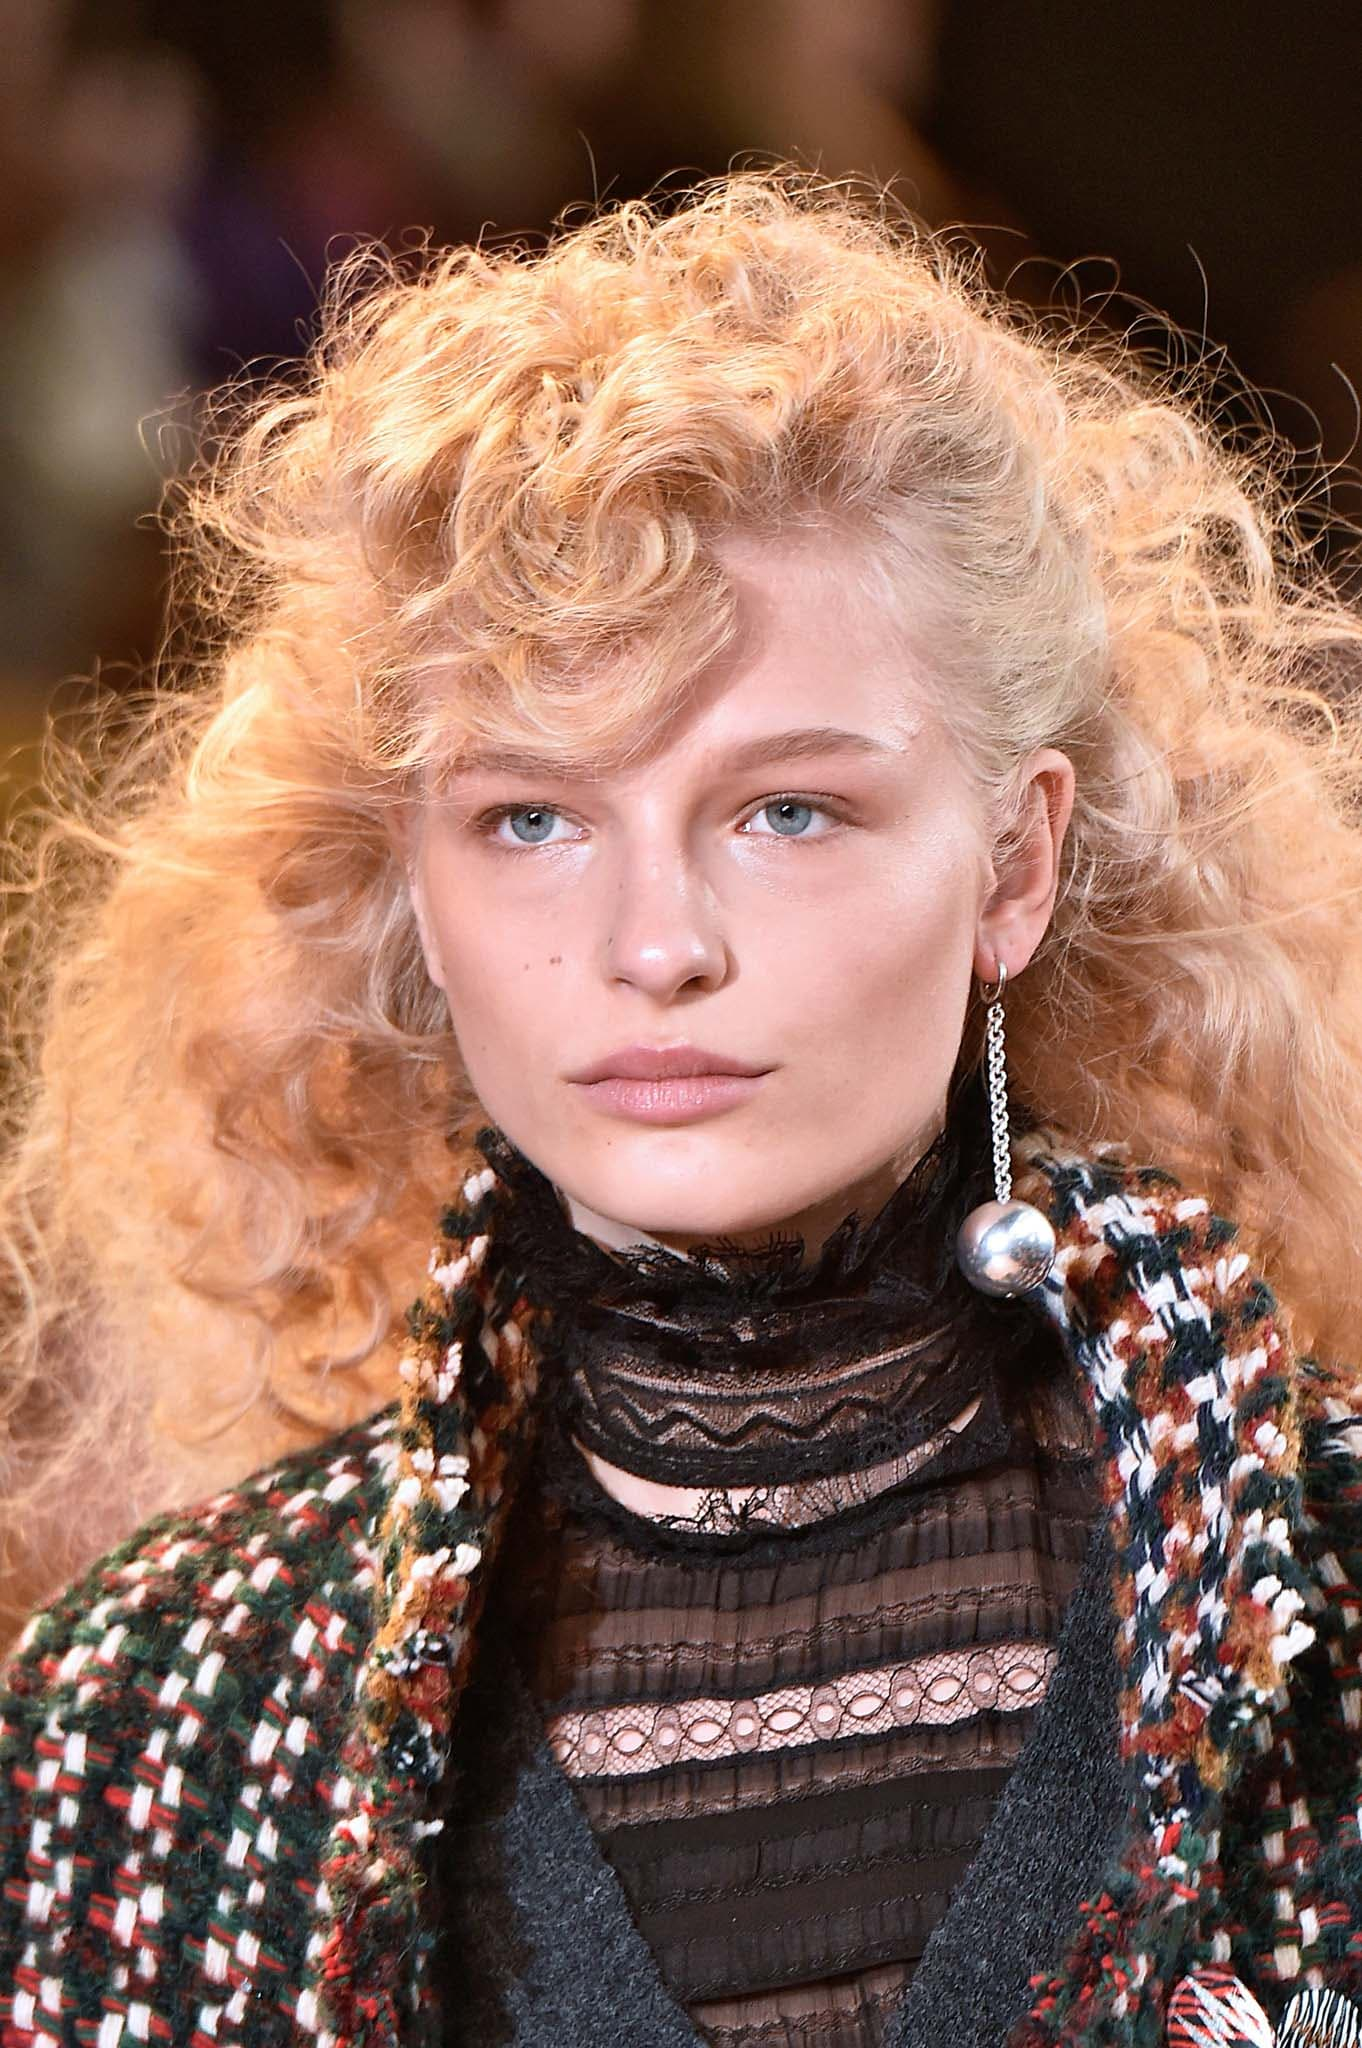 Los Peinados De Los 80 Vuelven A Ser Tendencia All Things Hair